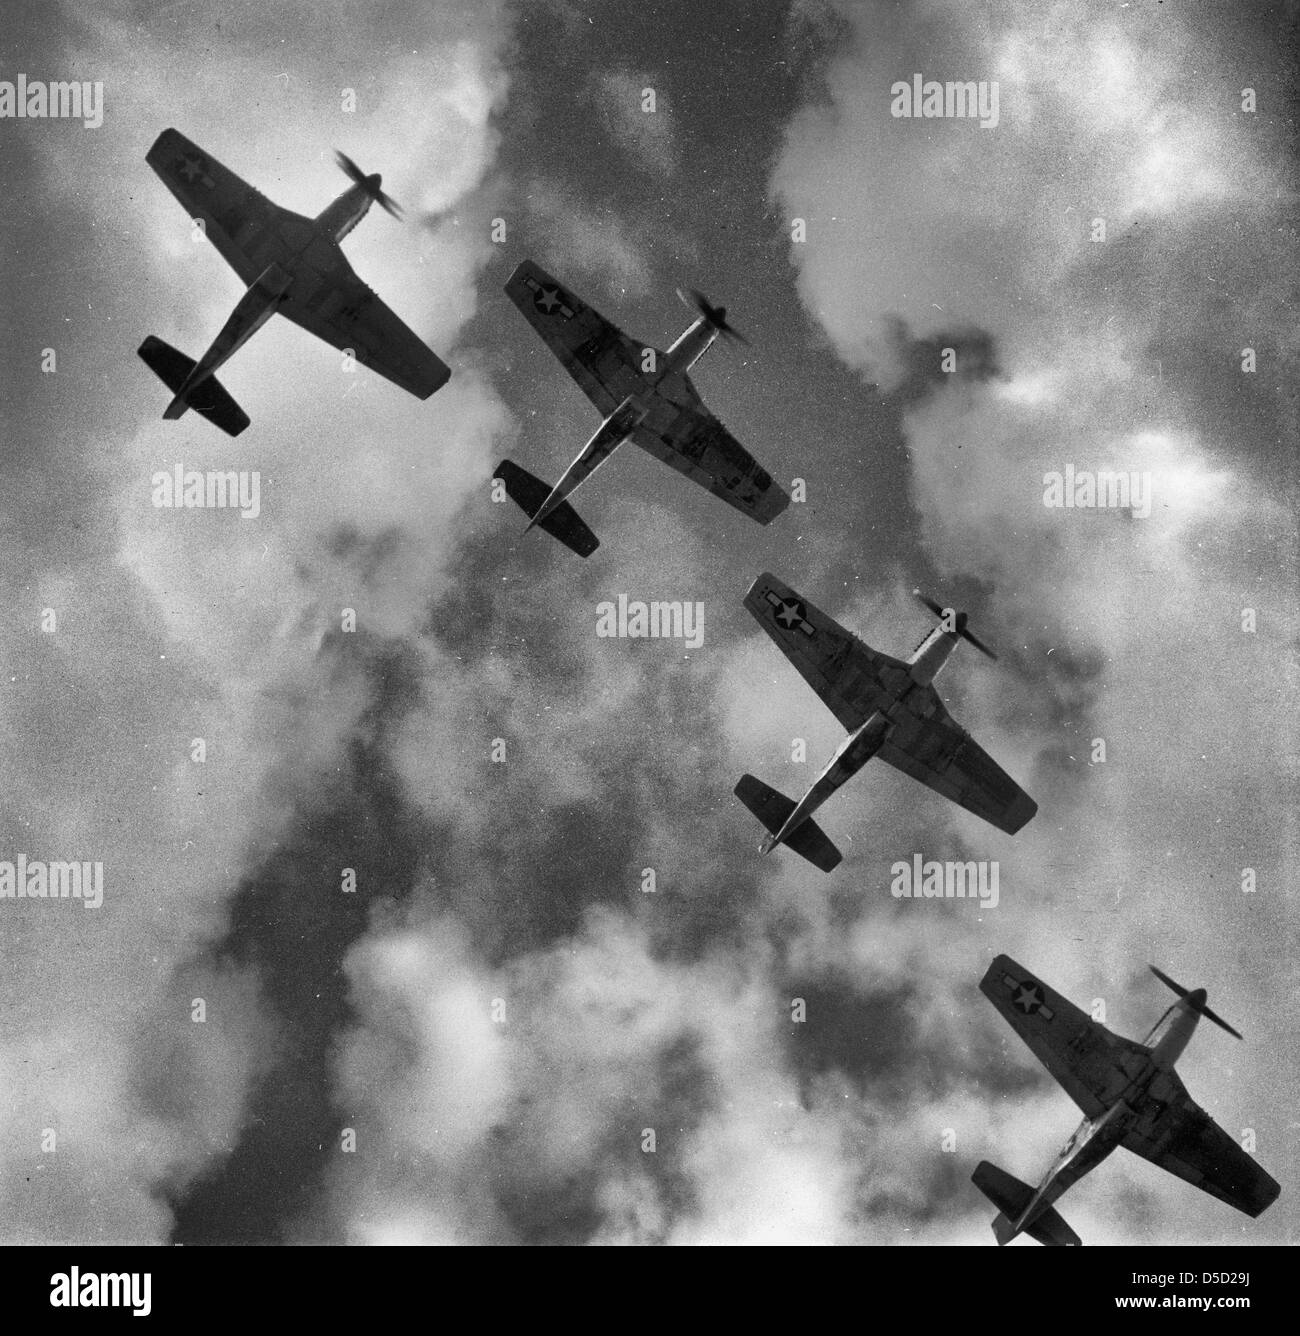 Four P-51 Mustangs flying in formation. Ramitelli, Italy, March 1945 - Stock Image